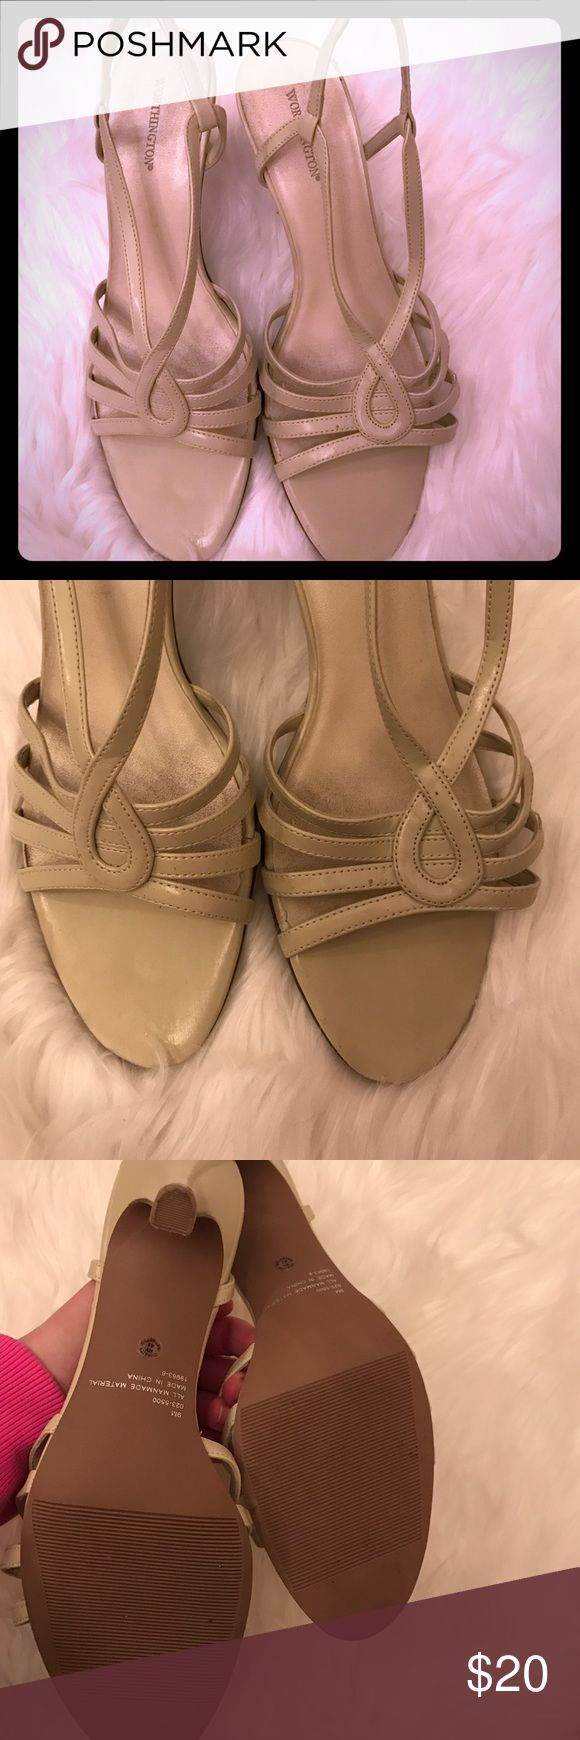 "Cream strappy heels Cream strappy heels. Only worn once. In great condition. Only slight discoloration on sole but no actual damage. 3"" heel Worthington Shoes Heels"